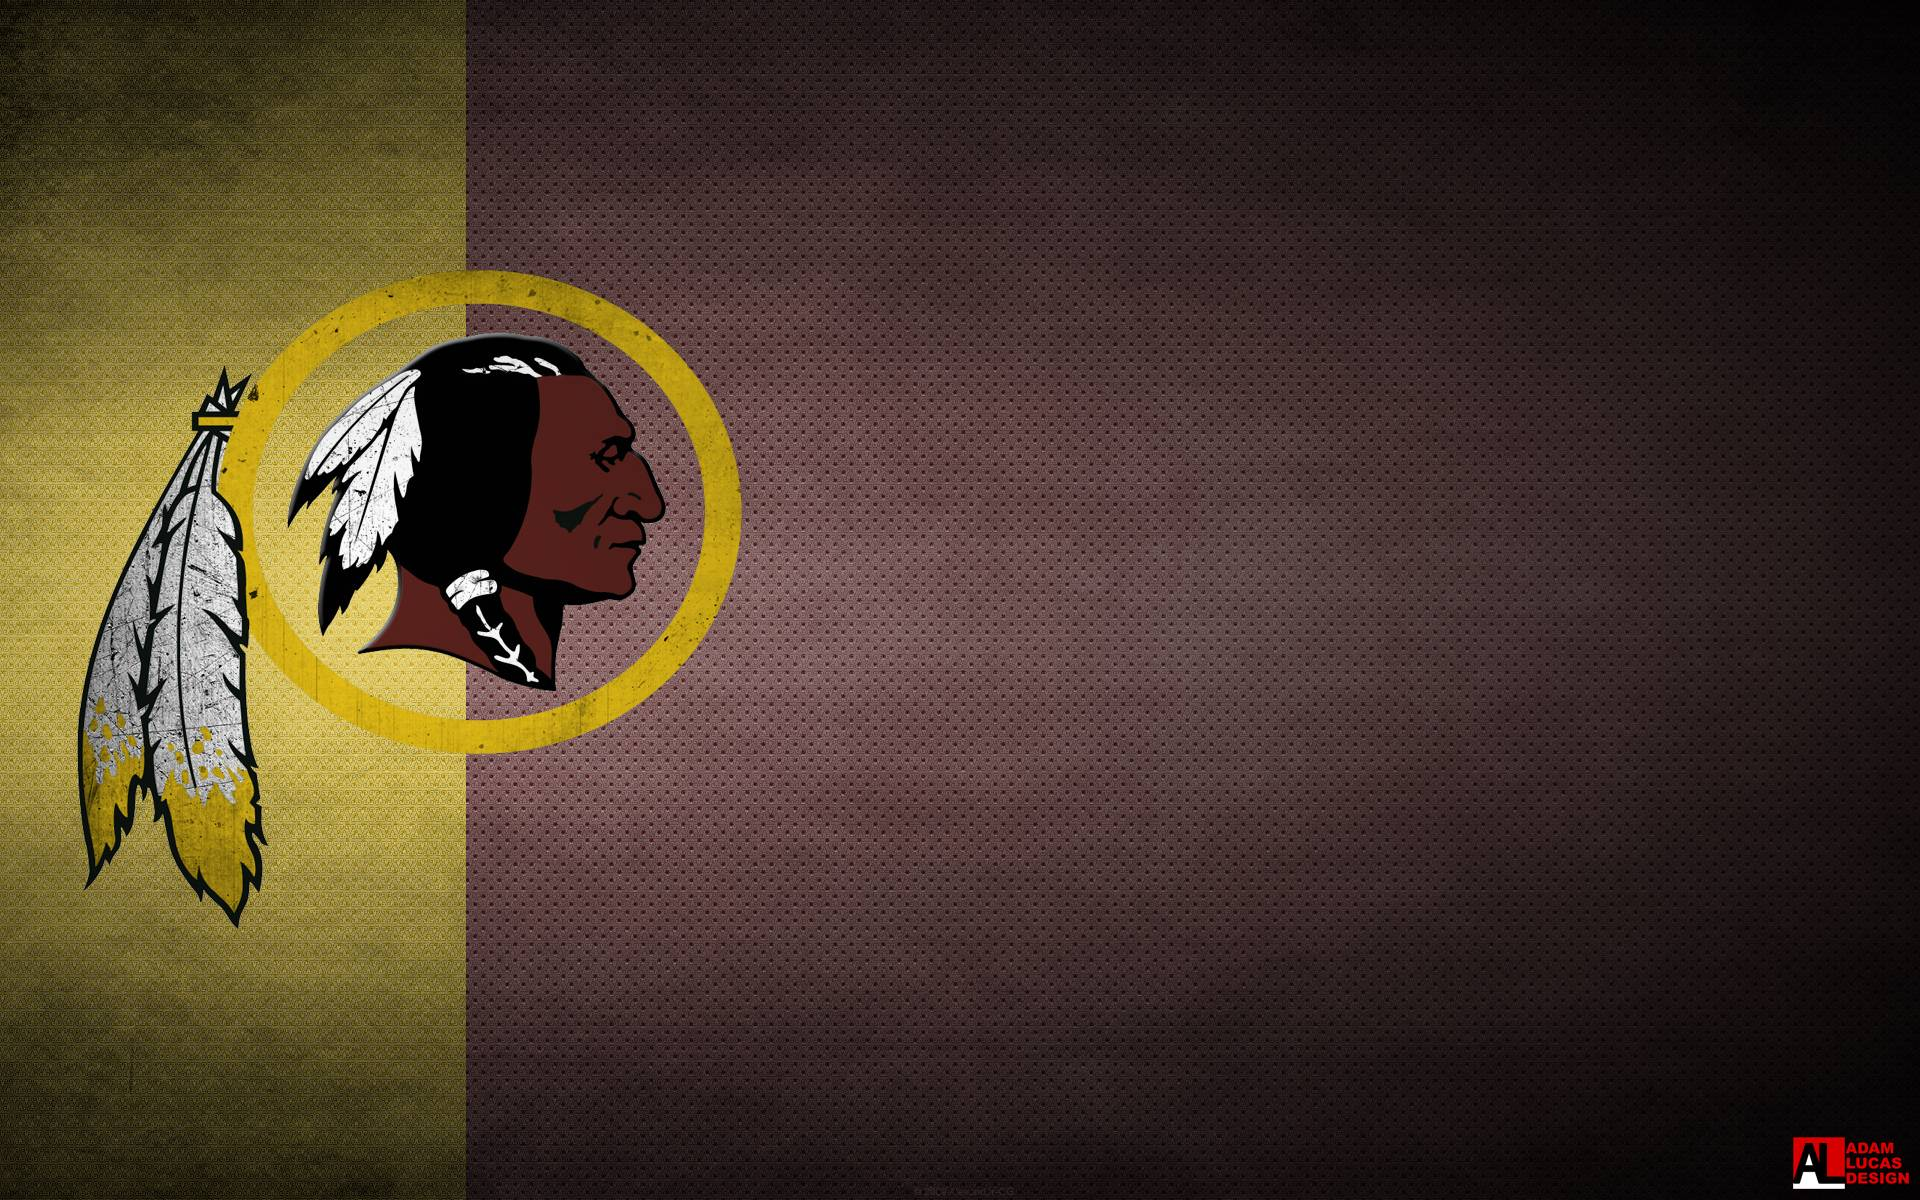 Download-free-redskins-for-your-mobile-phone-most-1920×-Redskins-Adorab-wallpaper-wpc9004410